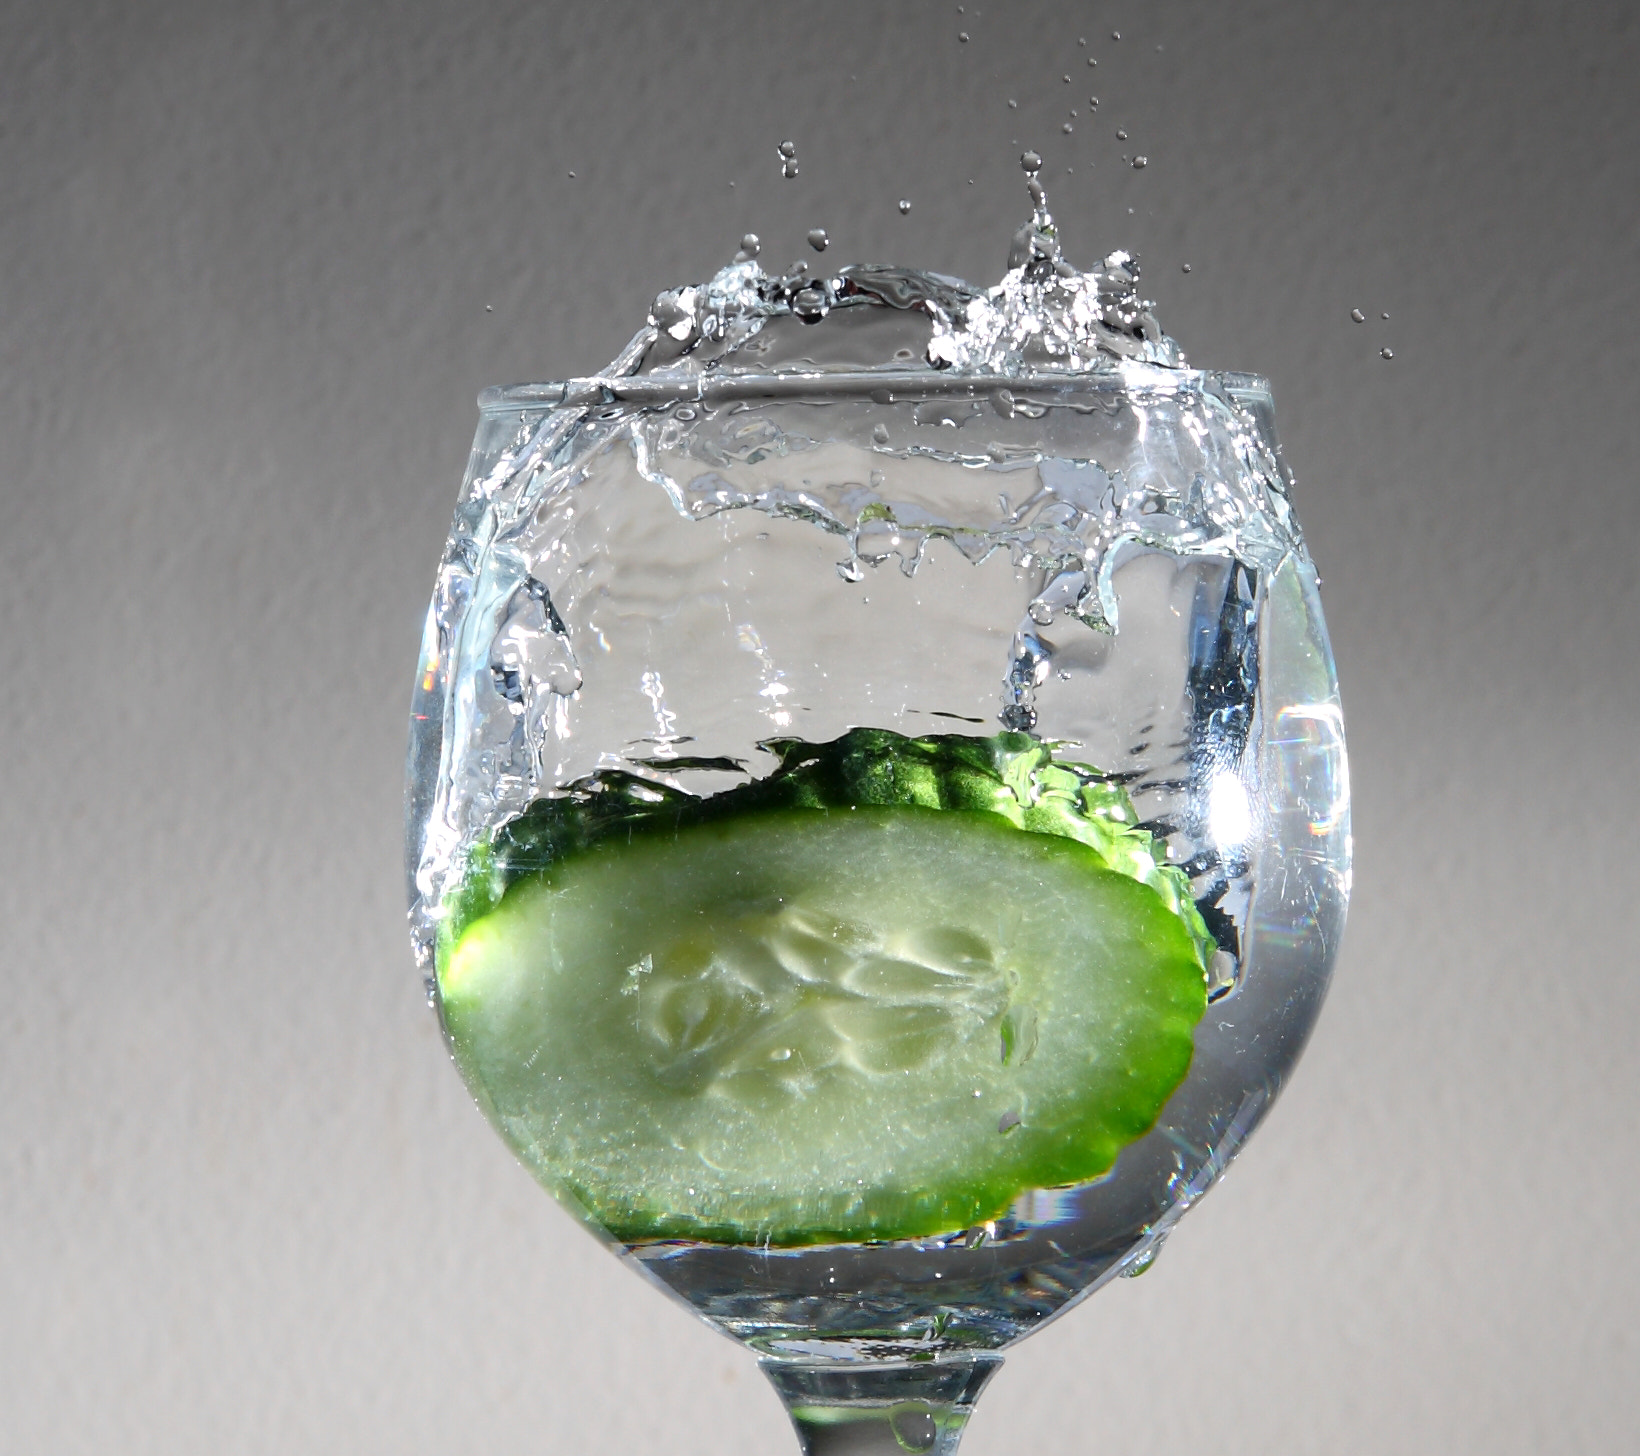 Photograph Cucumber Splash by Steve Garner on 500px